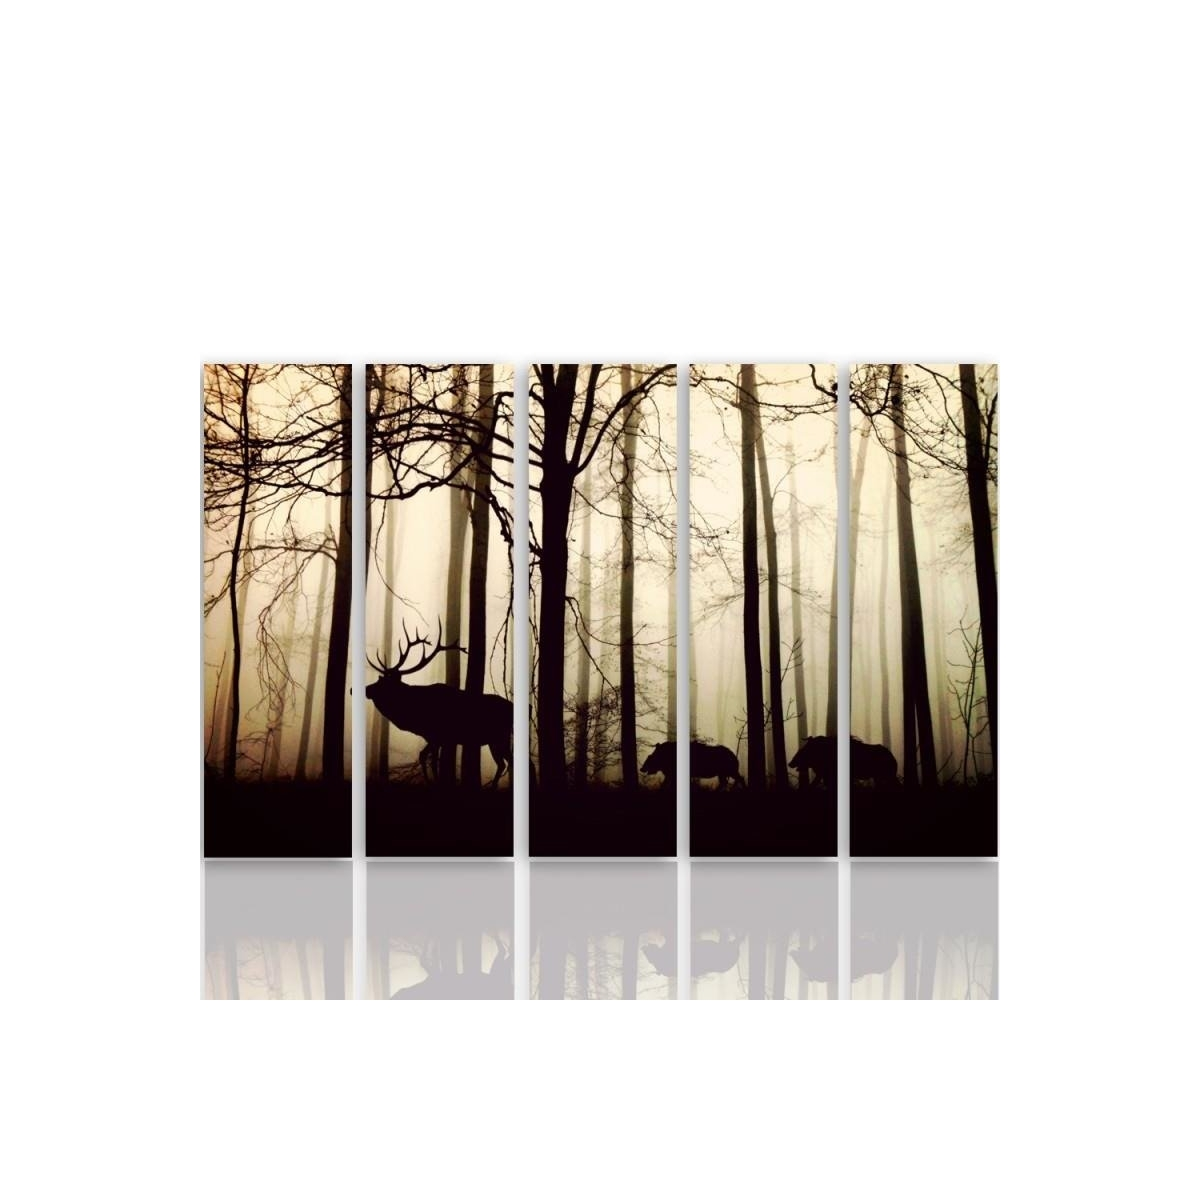 Five Part Picture On Canvas, Pentaptych, Type C, Animals In The Forest 100x150